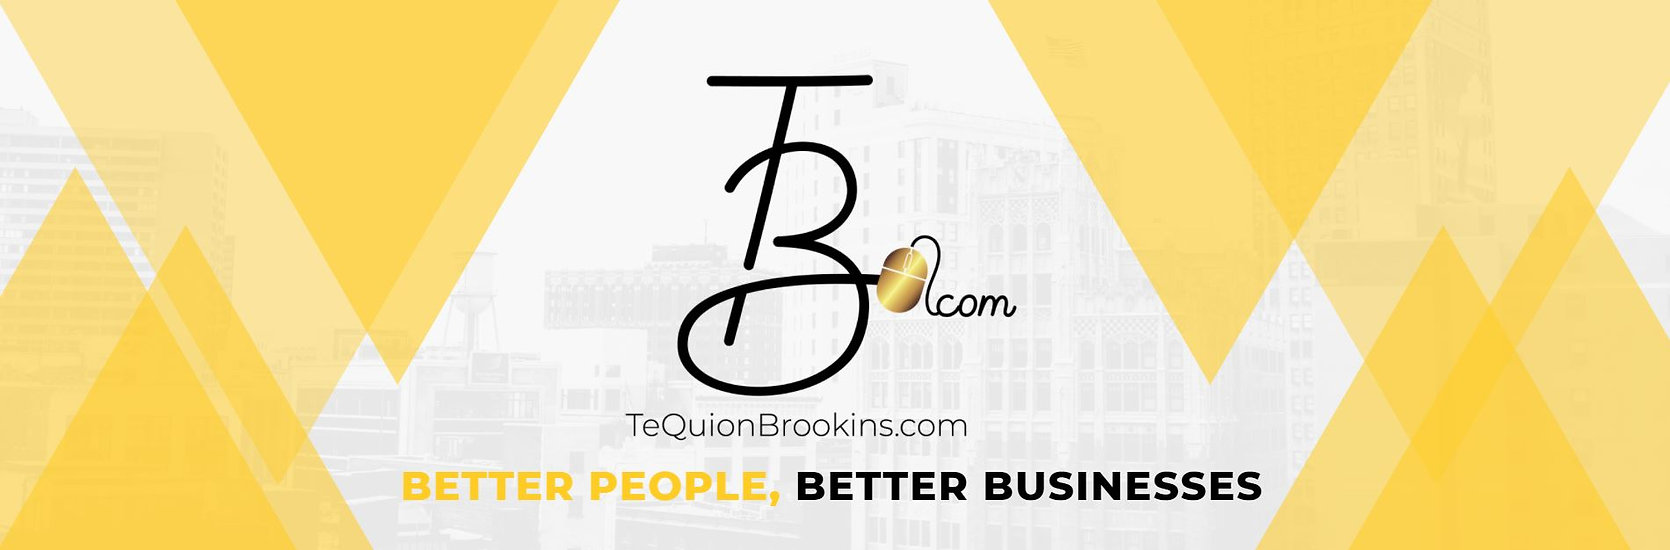 tequionbrookins.com virtual consulting for startups and nonprofits